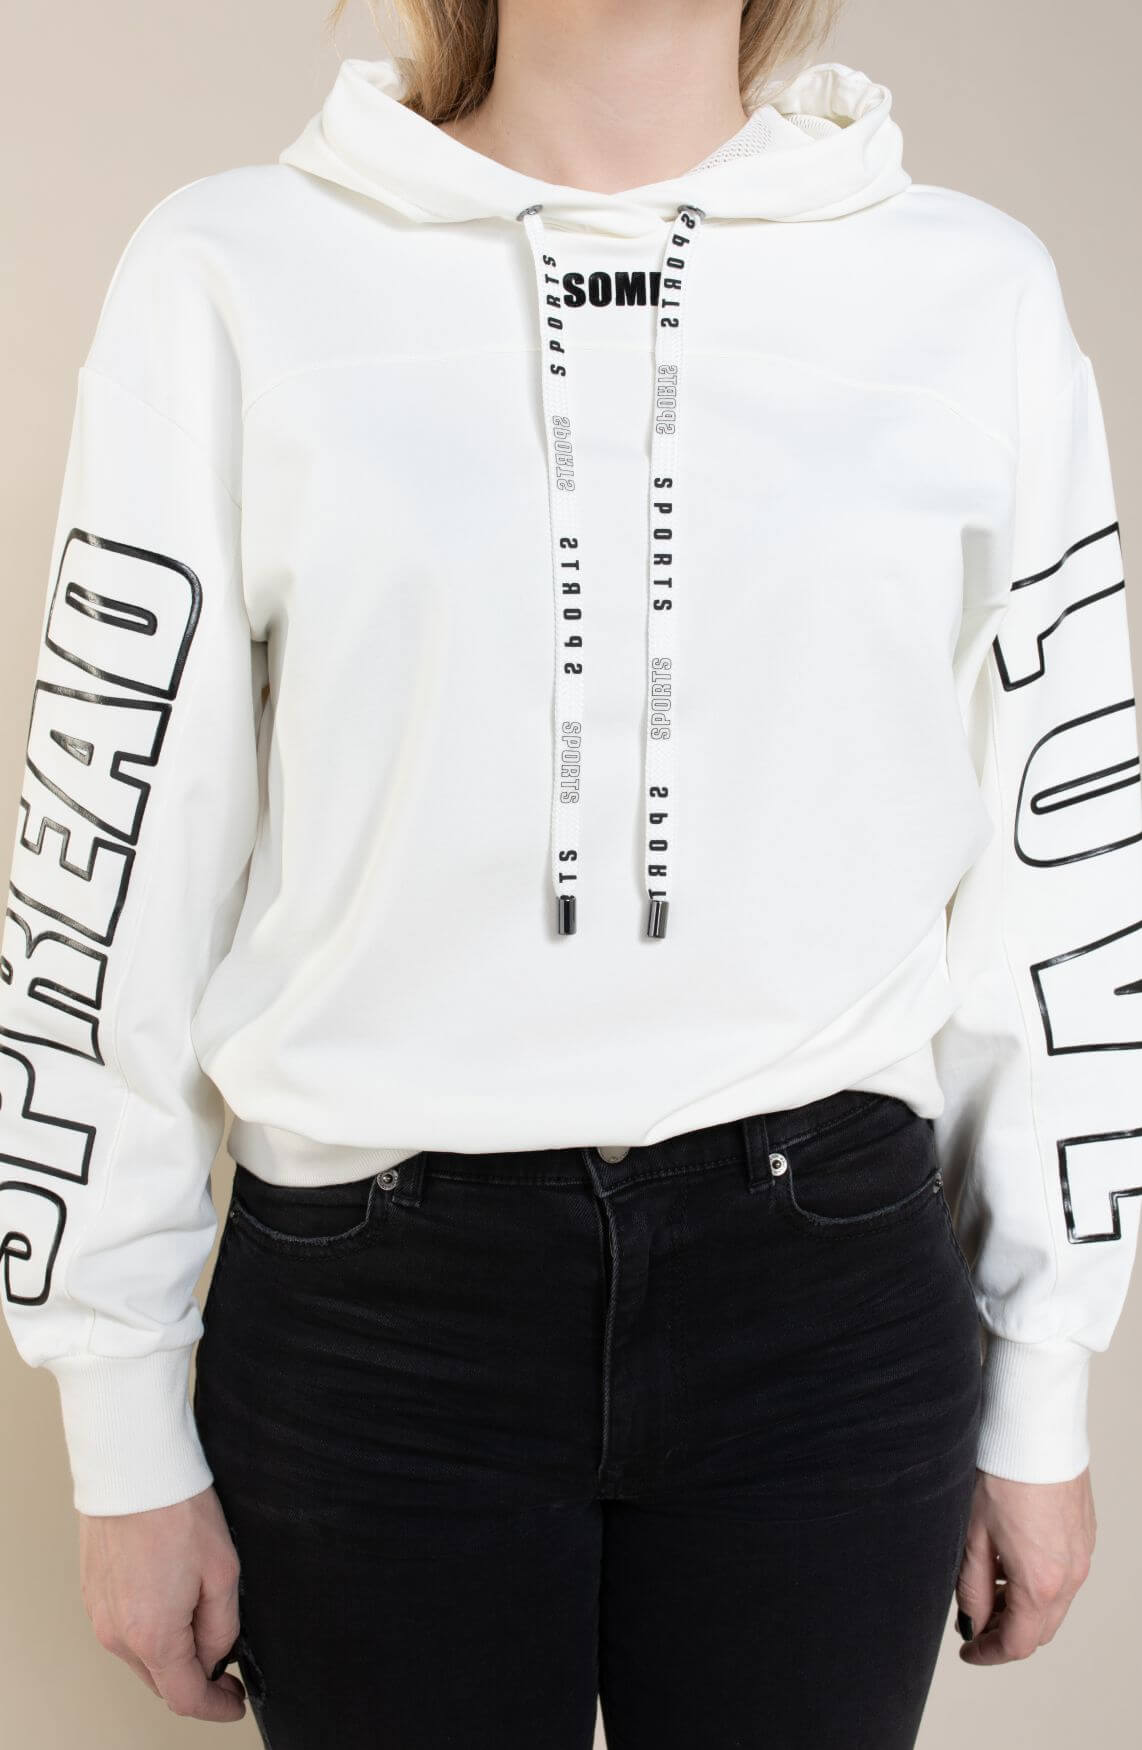 Marccain Sports Dames Sweater met tekstopdruk wit